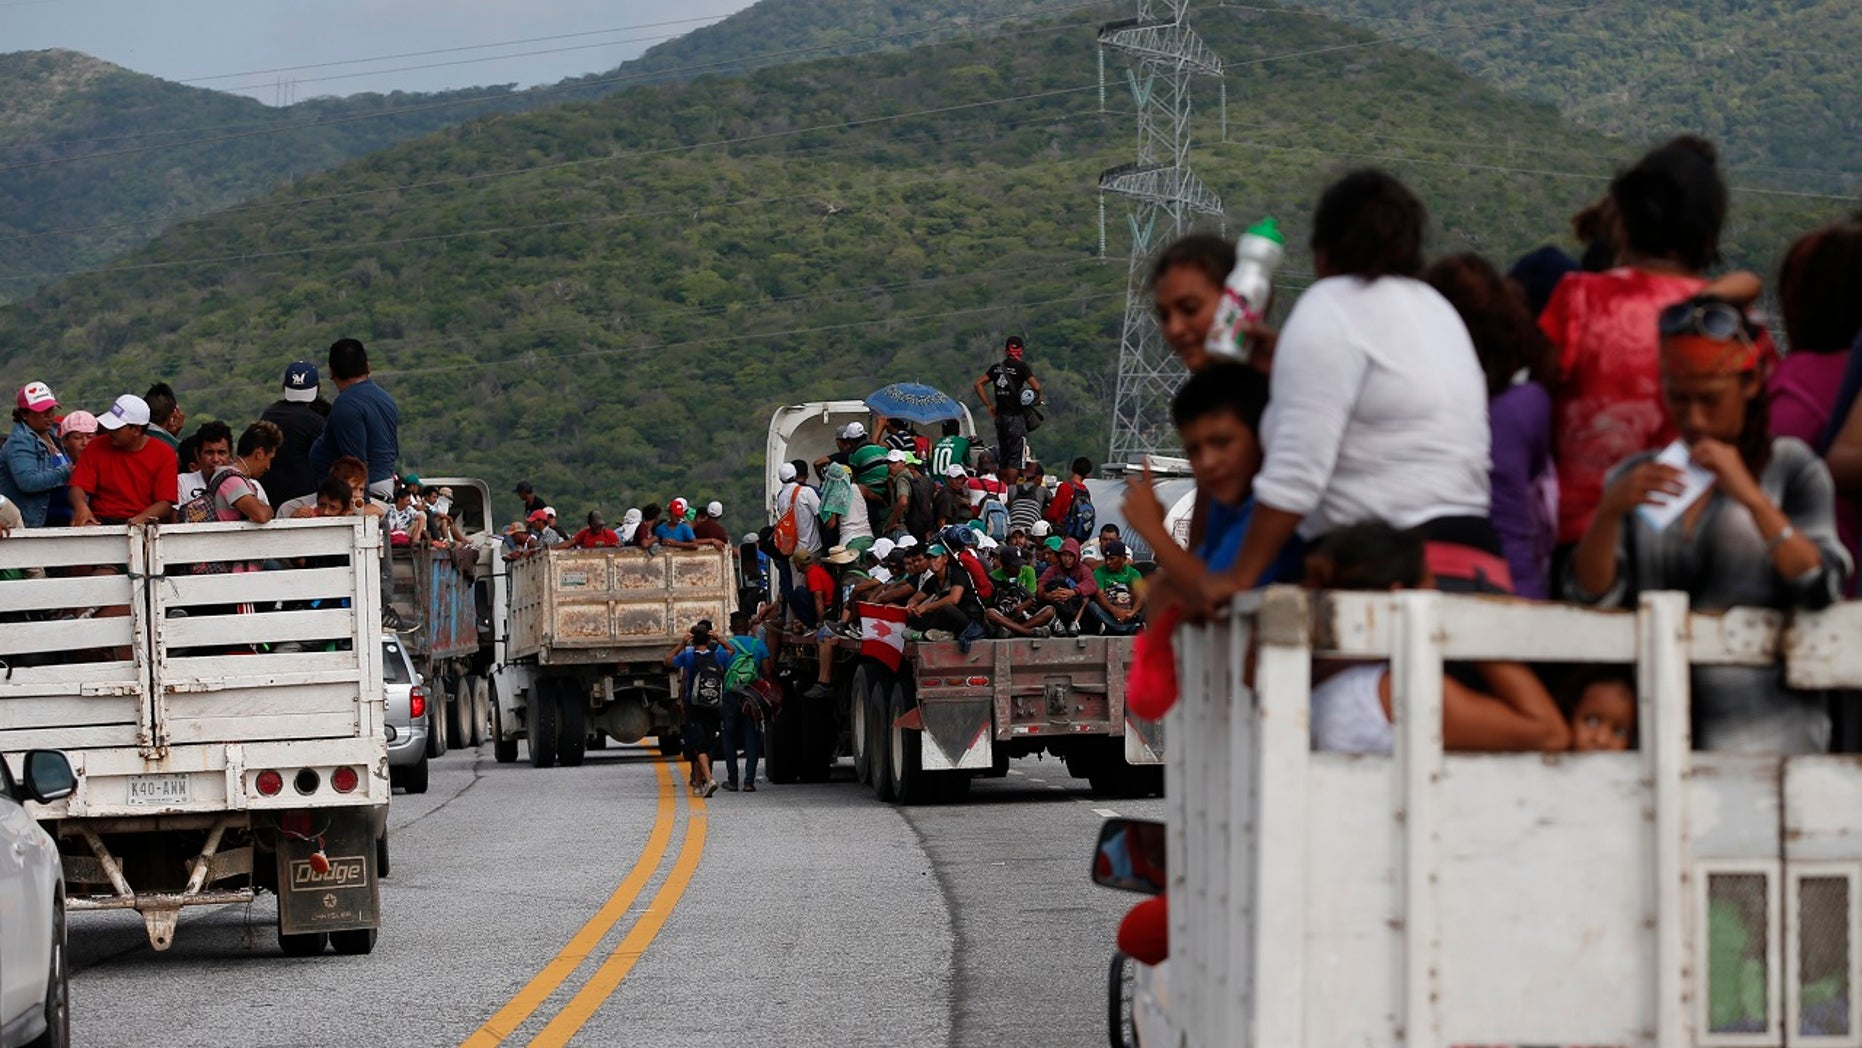 Migrants hitch rides in the back of trucks as the thousands-strong caravan of Central Americans hoping to reach the U.S. border moves onward from Juchitan, Oaxaca state, Mexico, Thursday, Nov. 1, 2018.